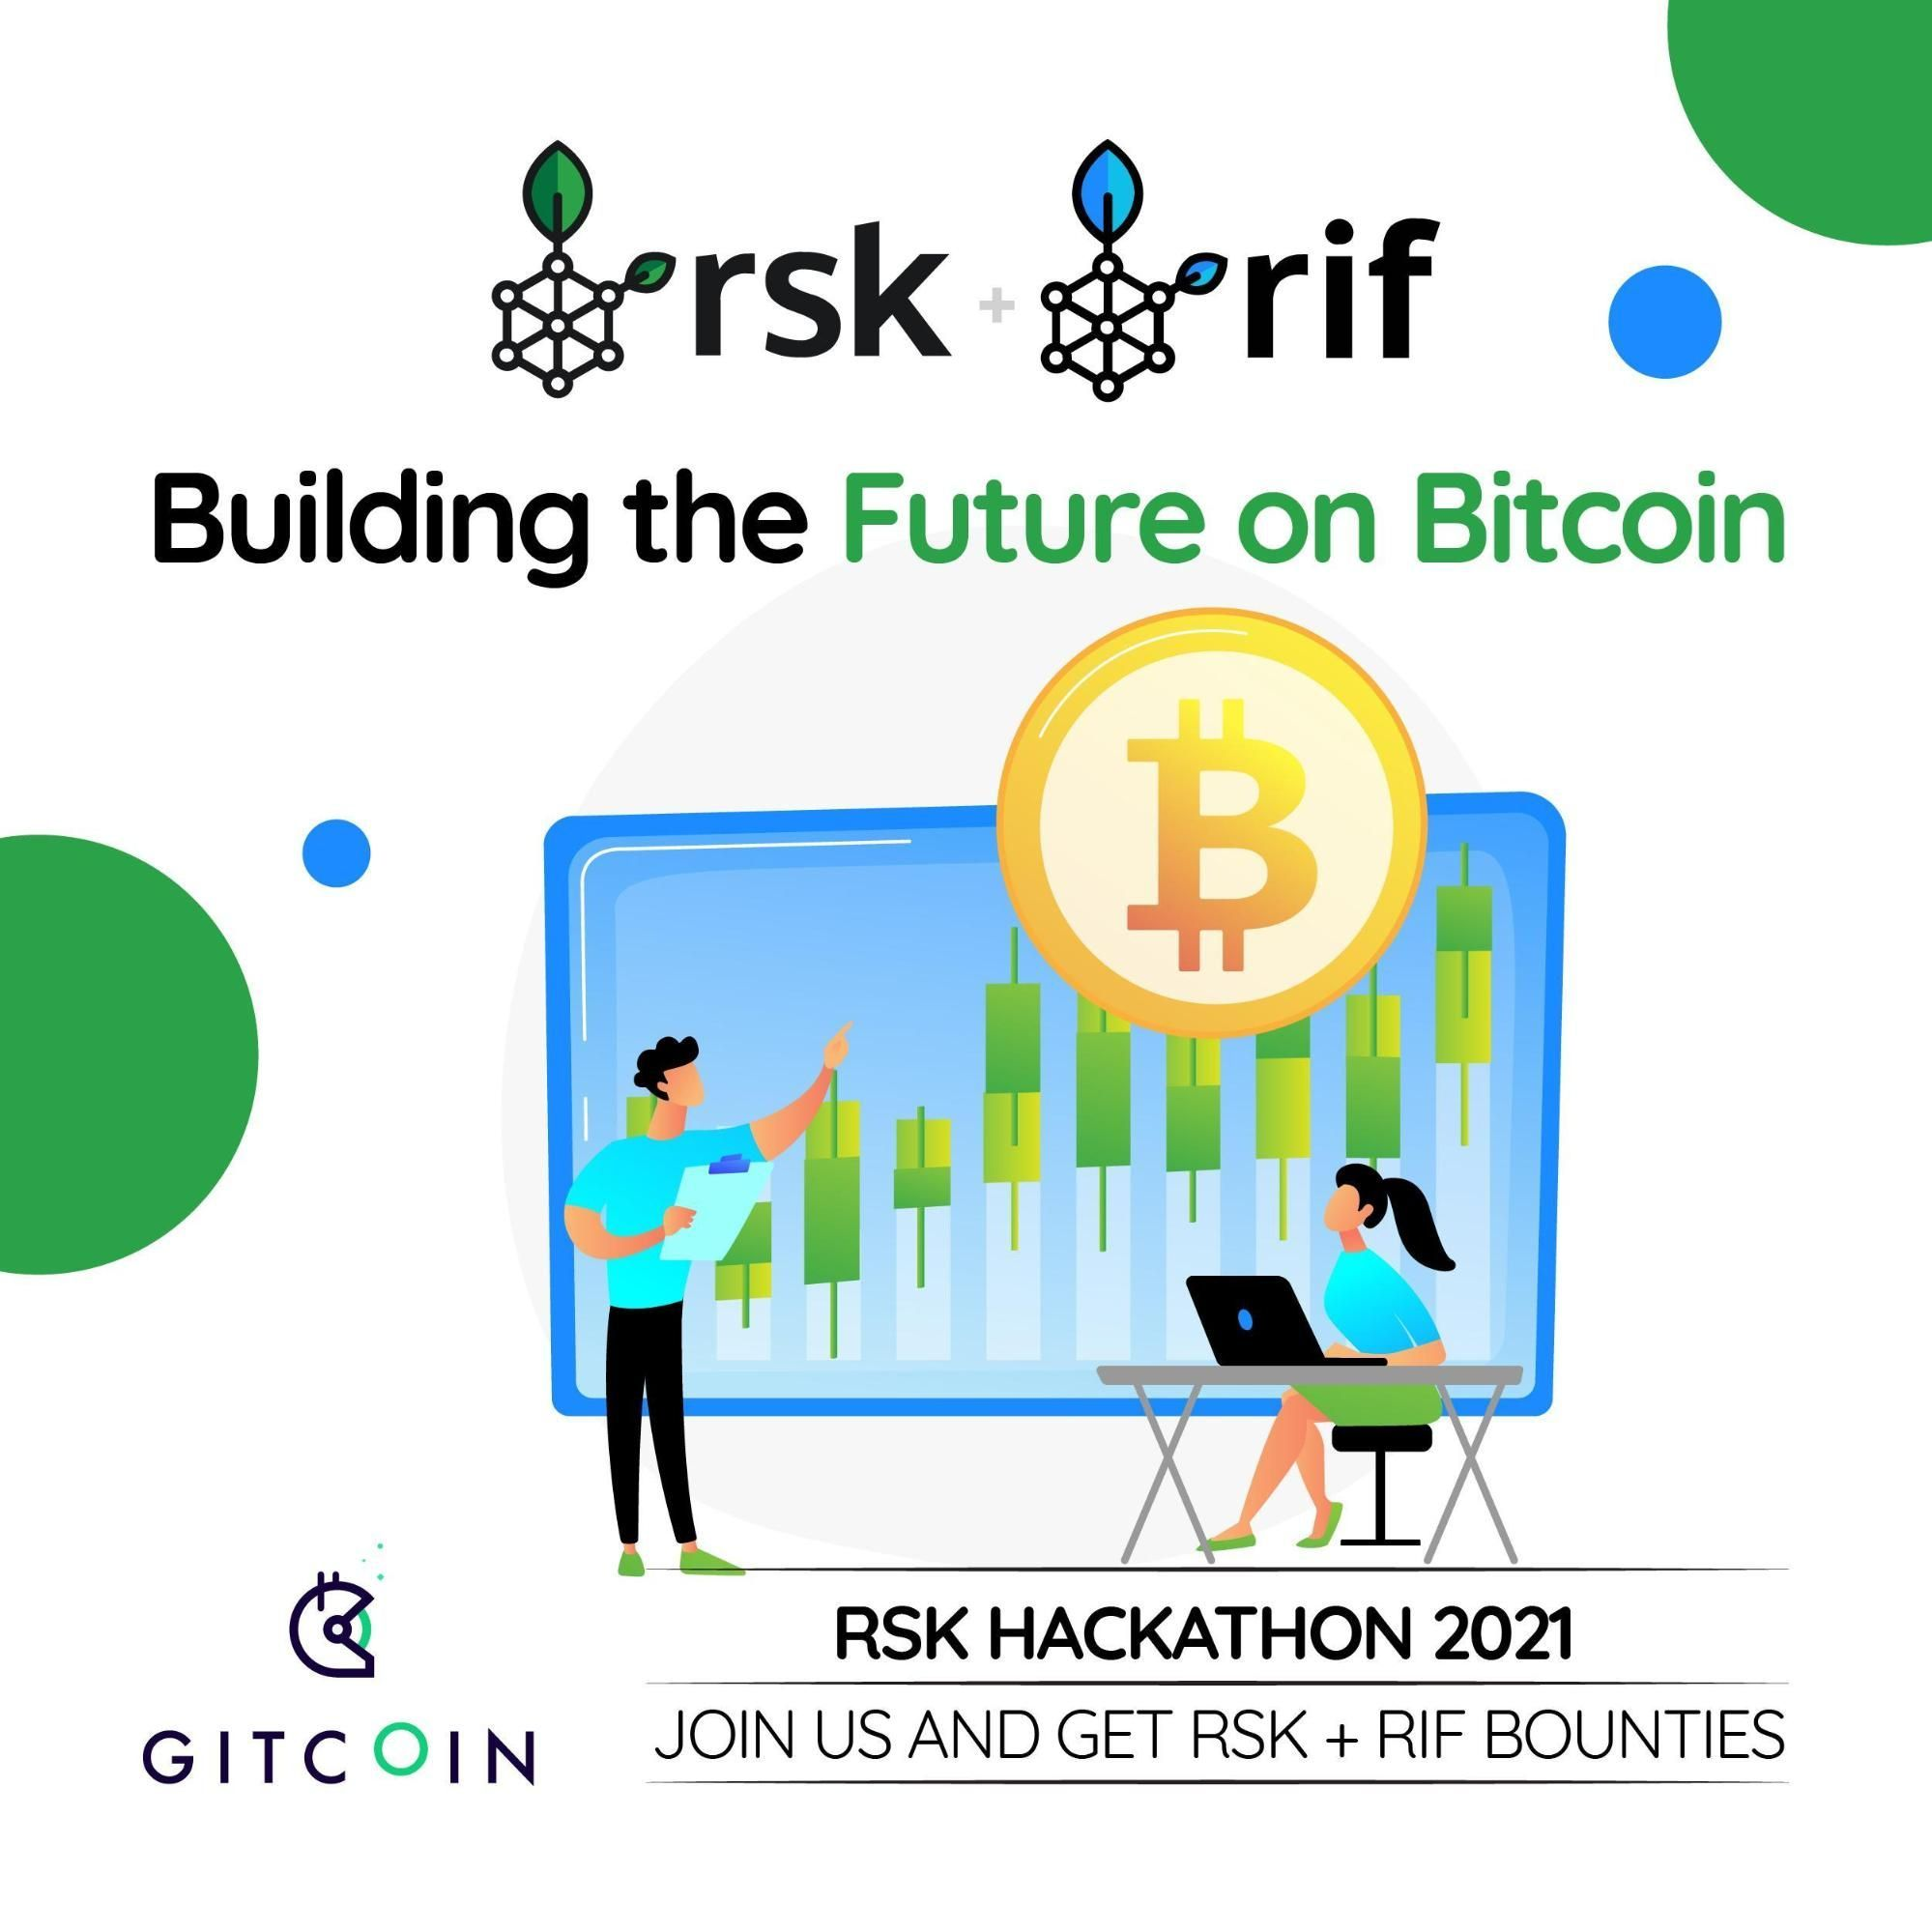 /rsk-gitcoin-hackathon-building-the-future-on-bitcoin-0a1j33z7 feature image